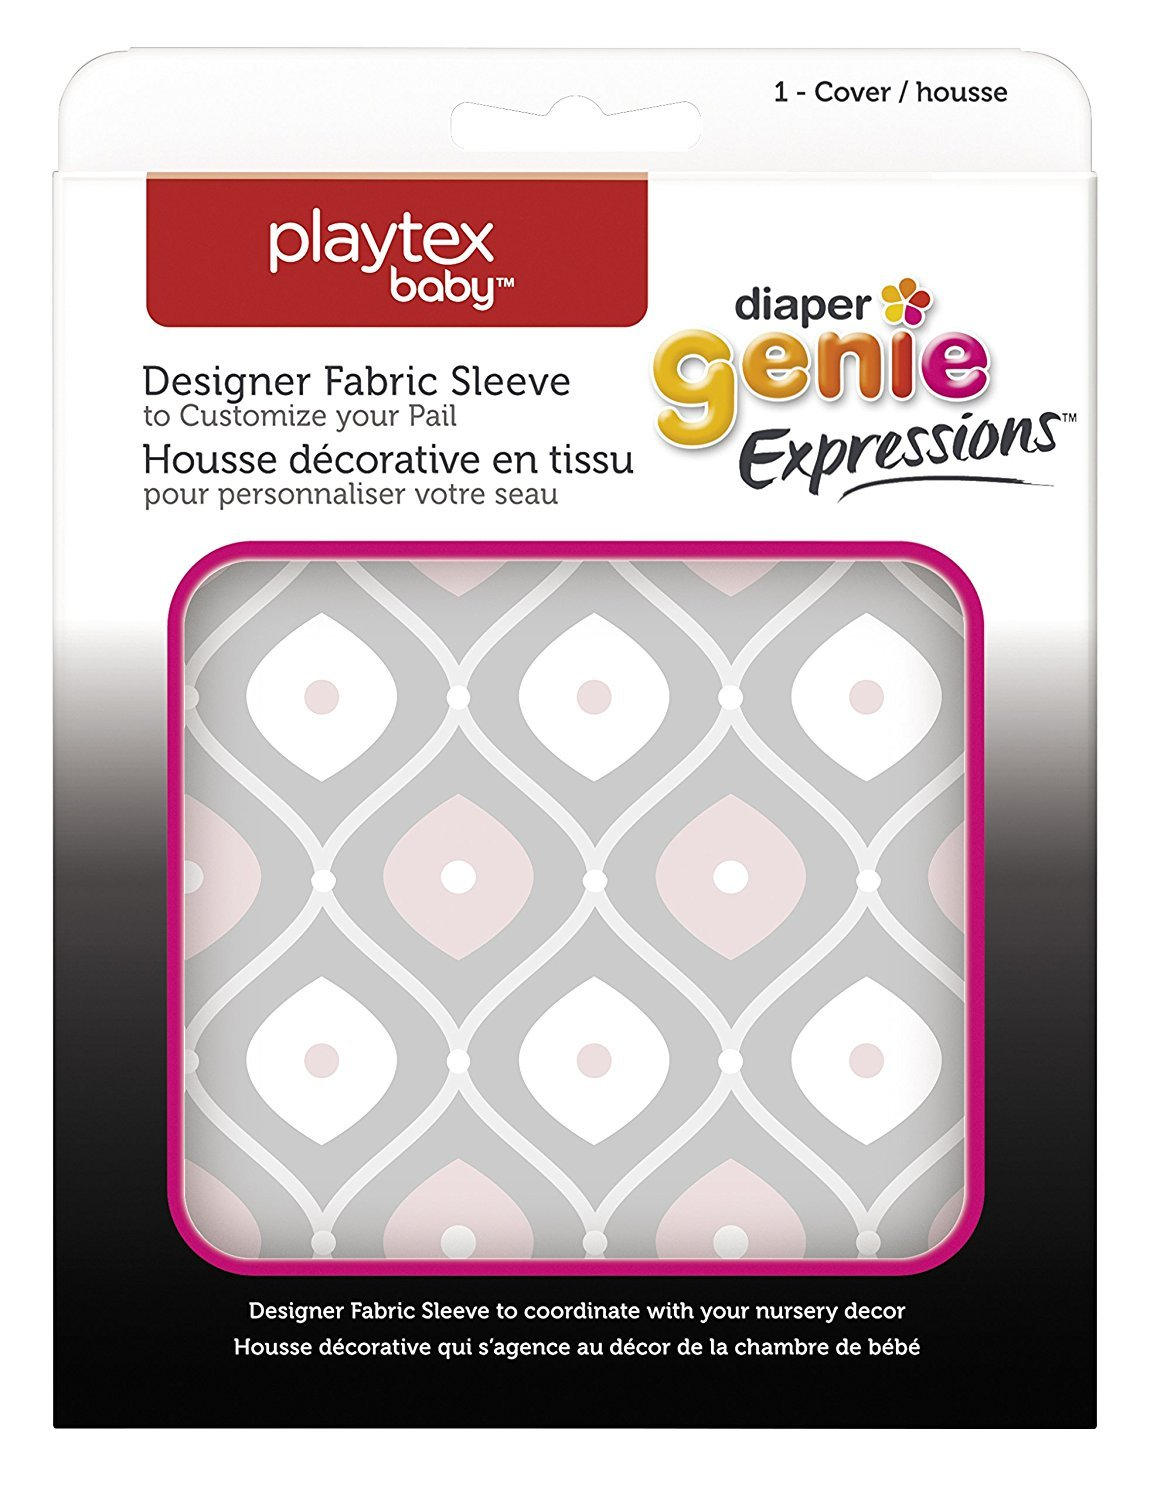 Playtex Diaper Genie Expressions Diaper Pail Fabric Sleeve, Grey Clovers Edgewell Personal Care 10078300019449